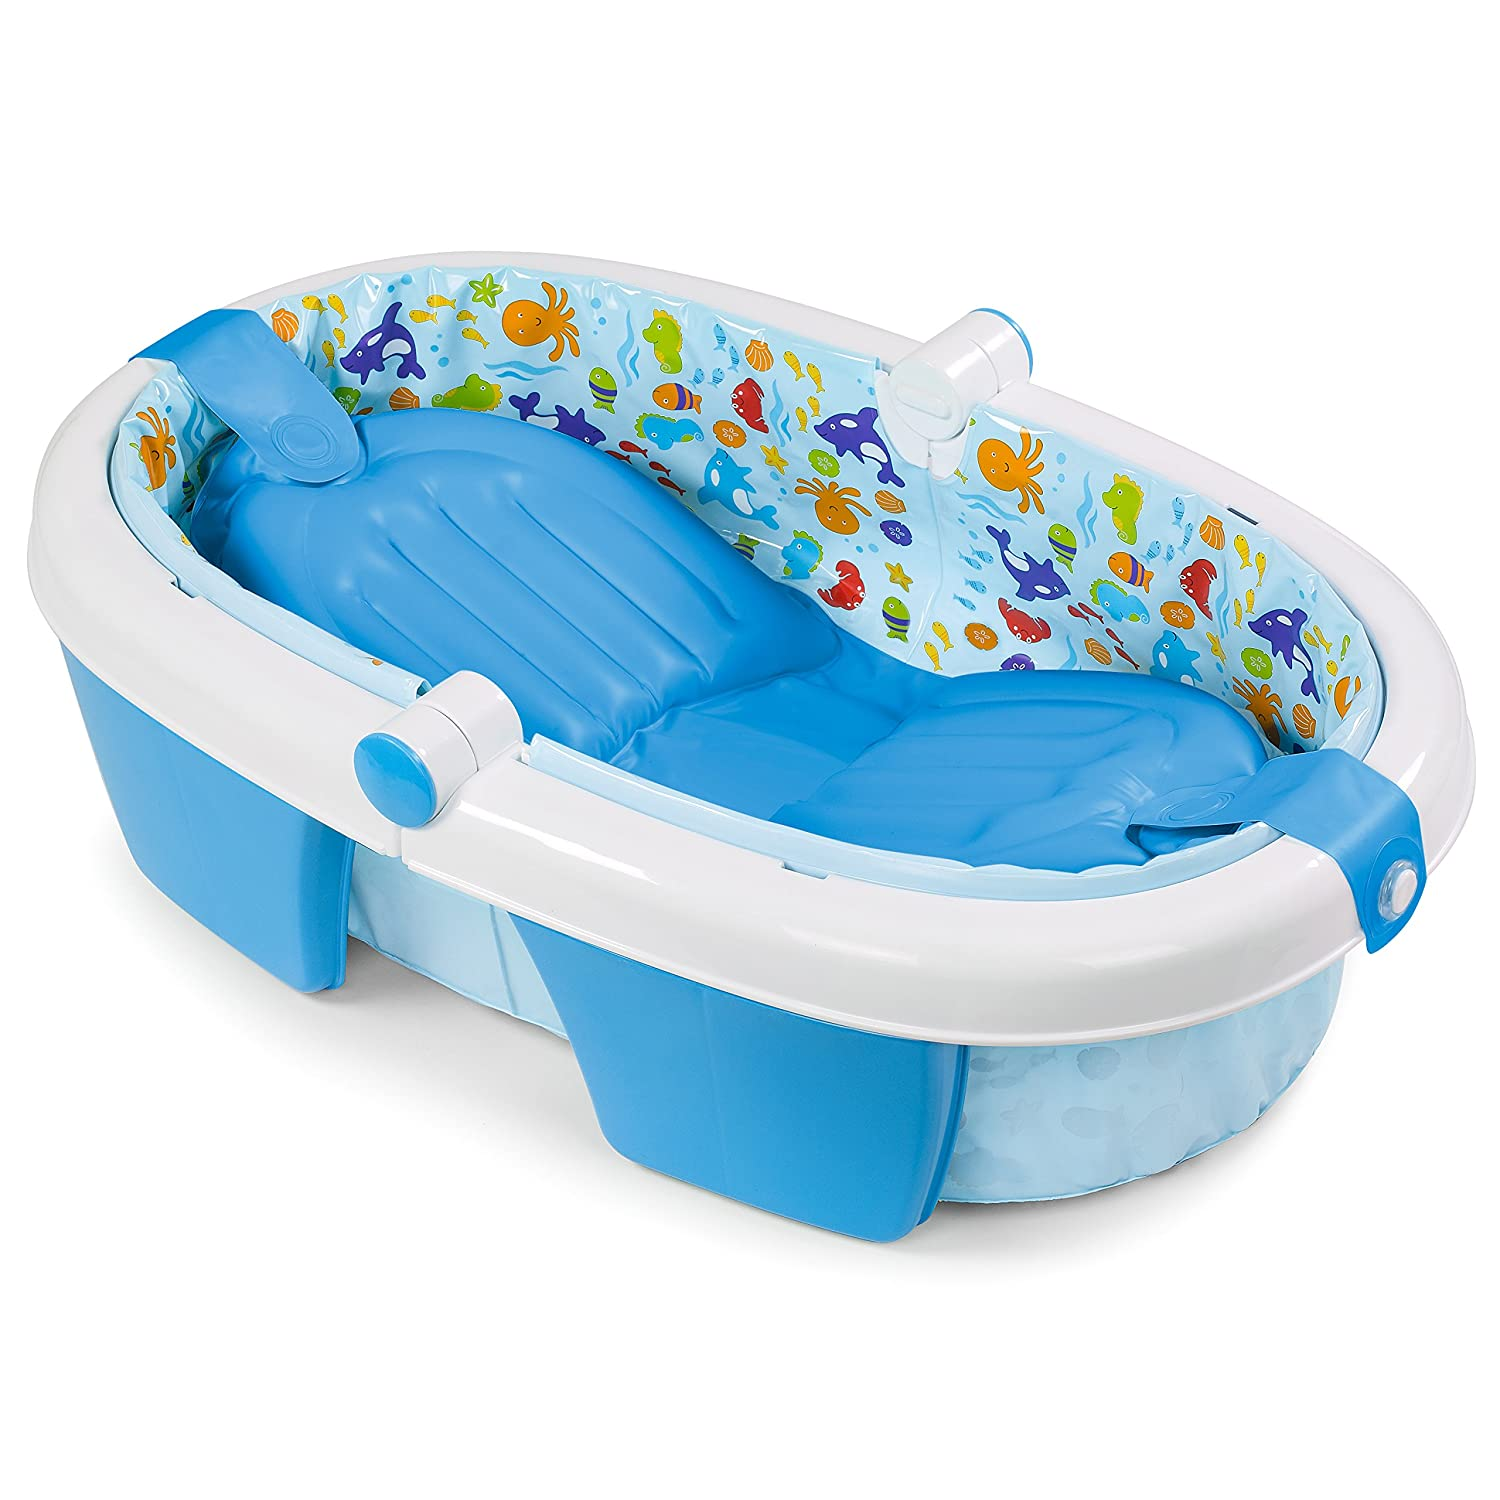 Amazon.com : Summer Fold Away Baby Bath